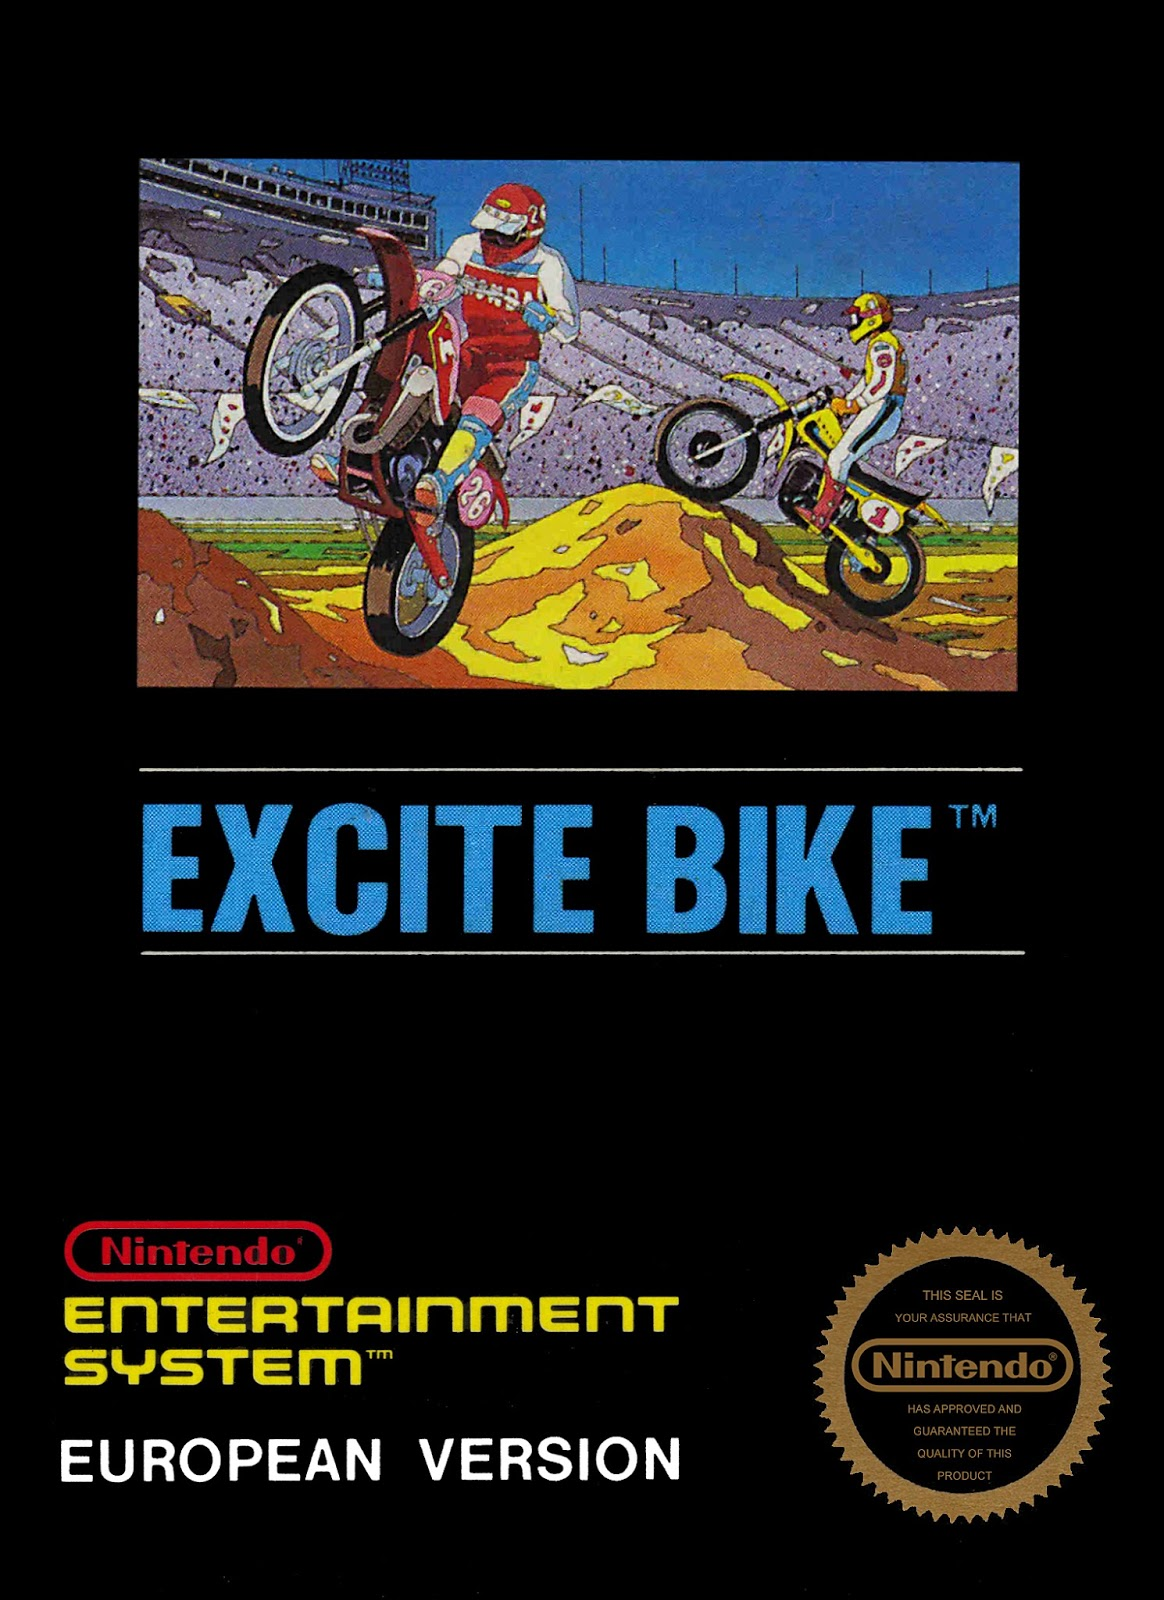 RETROGAMES: RECORDAMOS EXCITE BIKE